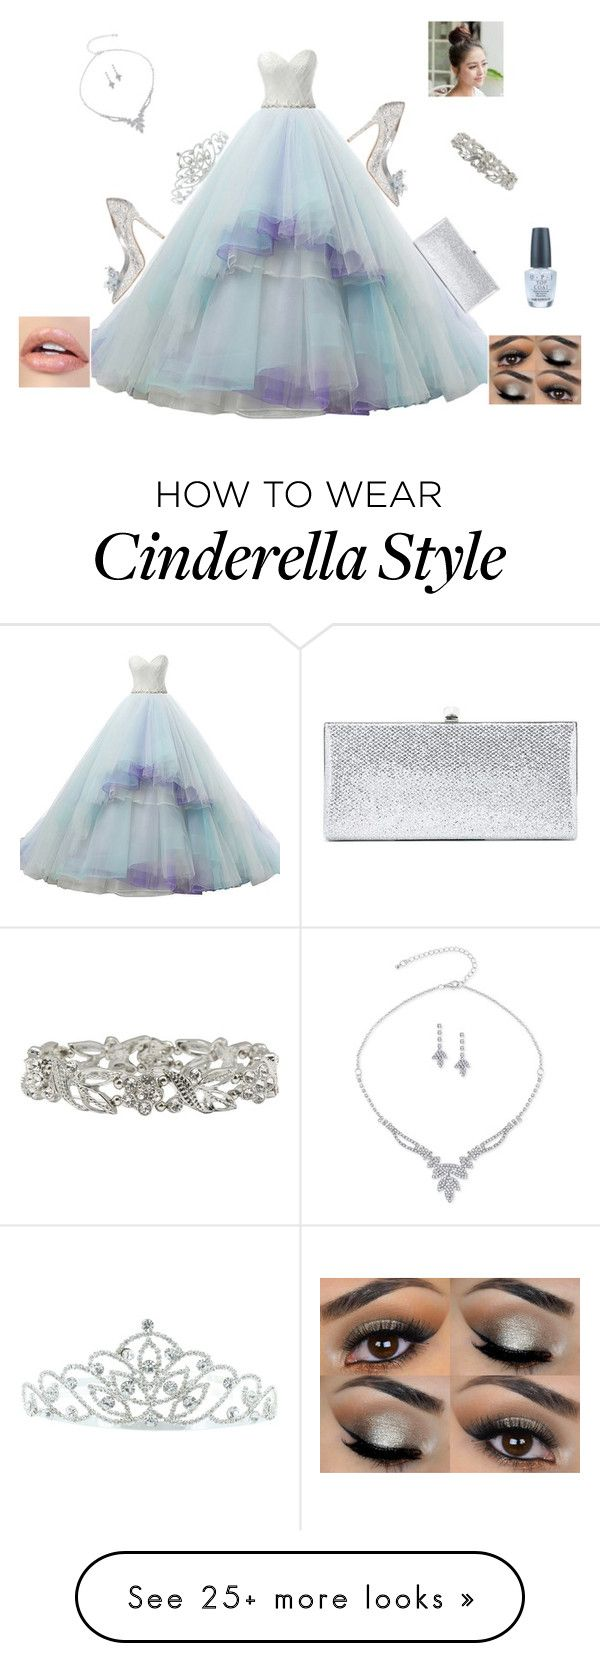 """""""Cinderella Prom Look"""" by phat-panda on Polyvore featuring Jimmy Choo, Kate Marie, M&Co and OPI"""